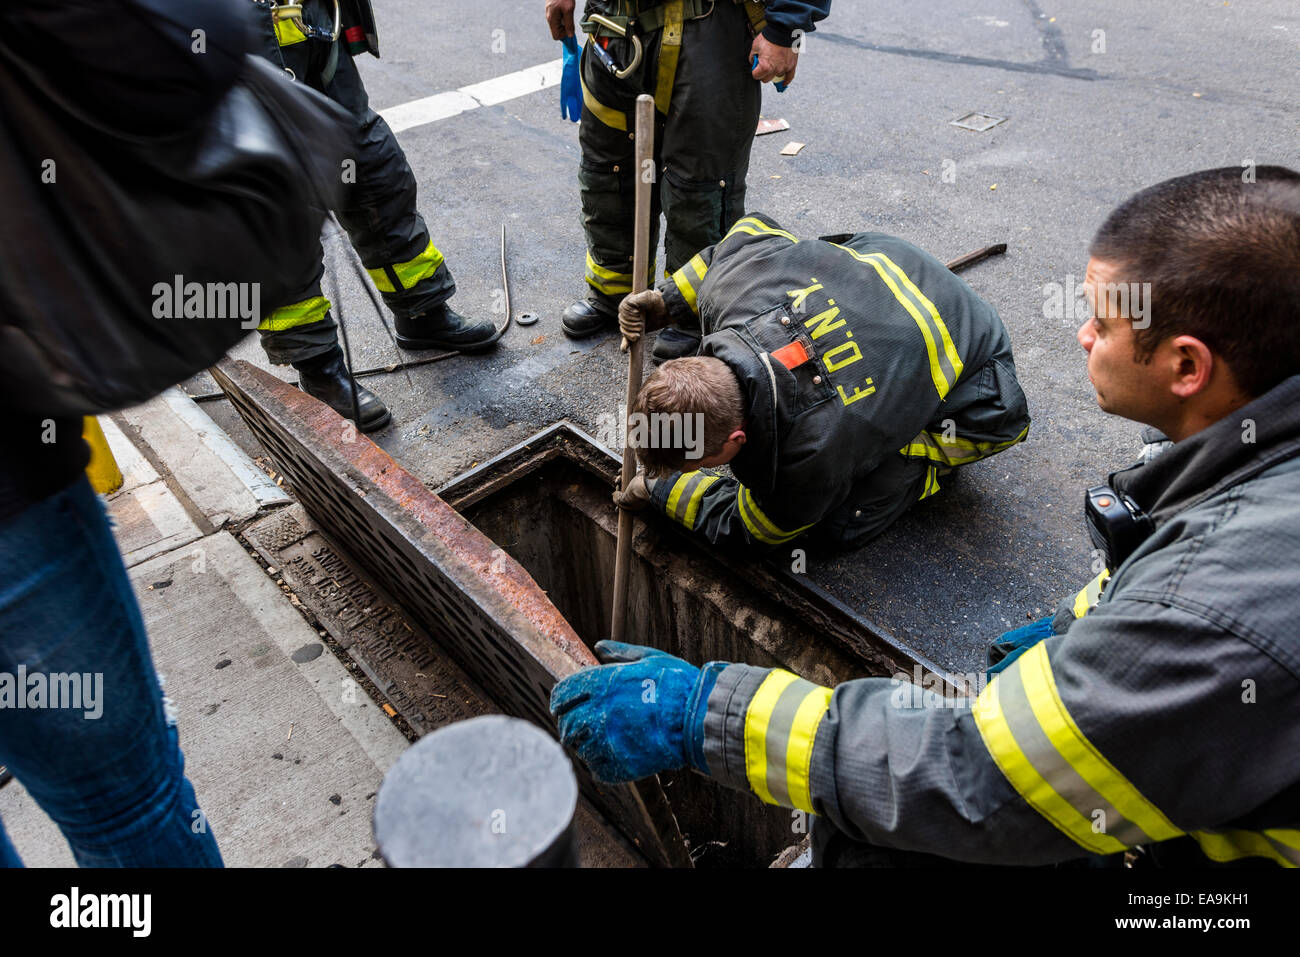 New York, NY 9 November 2014 - Fire fighters using tools to fetch lost keys that fell down a sewer. - Stock Image